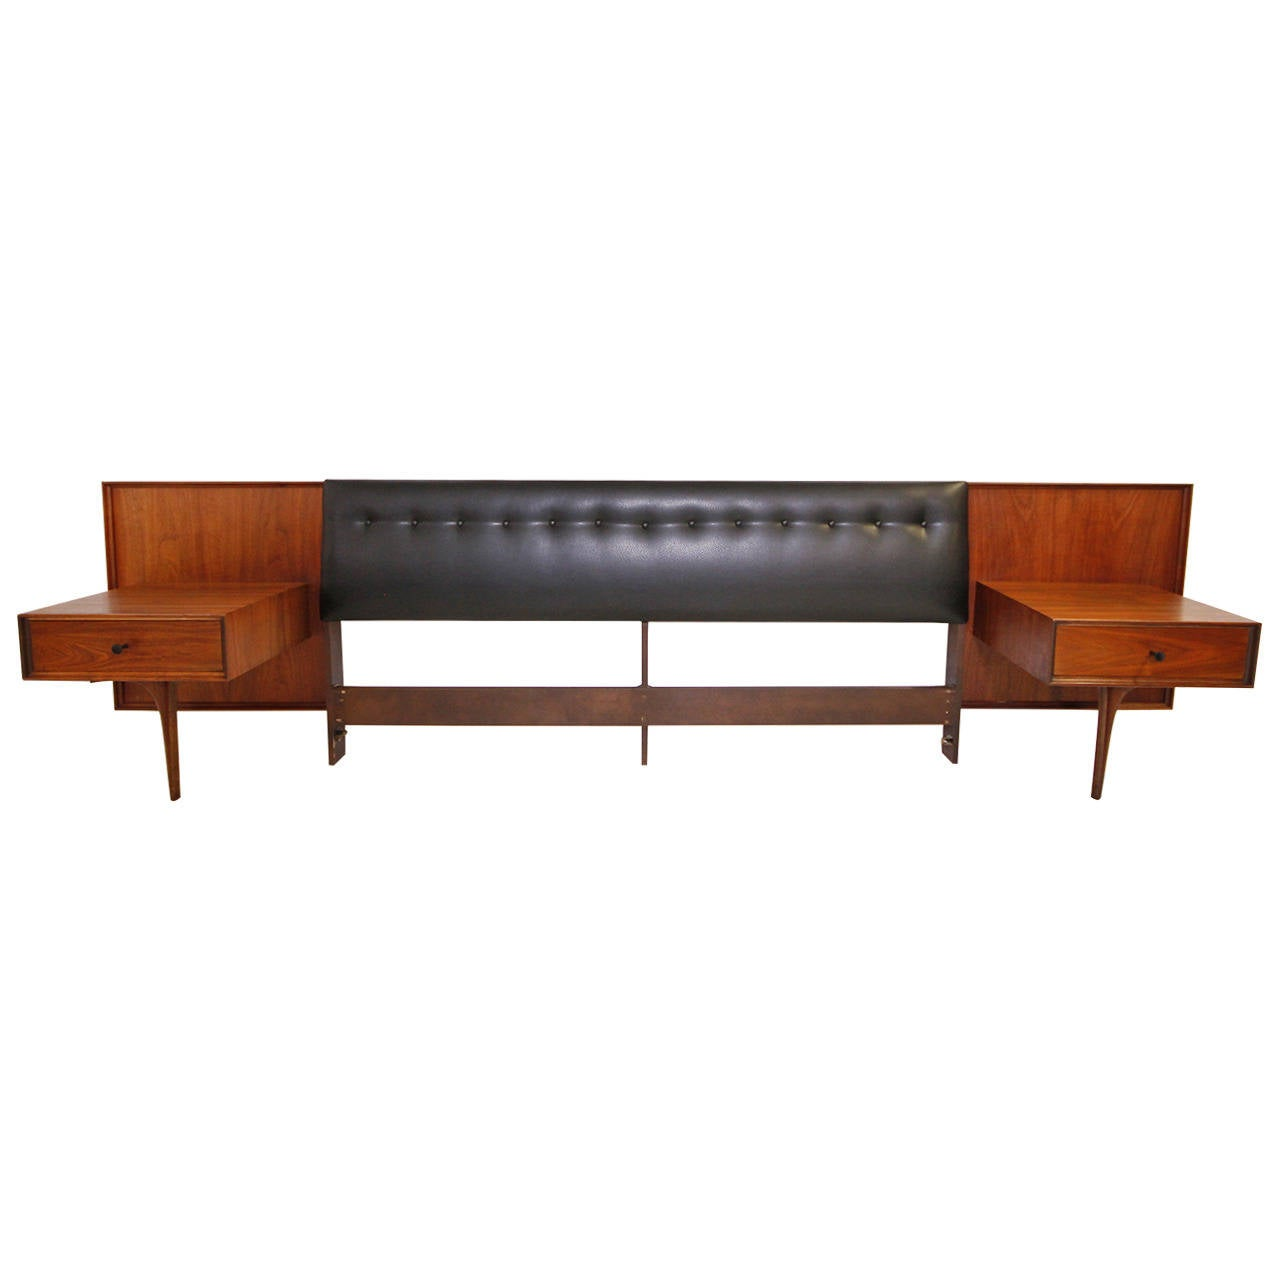 Stunning Mid-Century Modern King Headboard with Floating Nightstands at 1stdibs